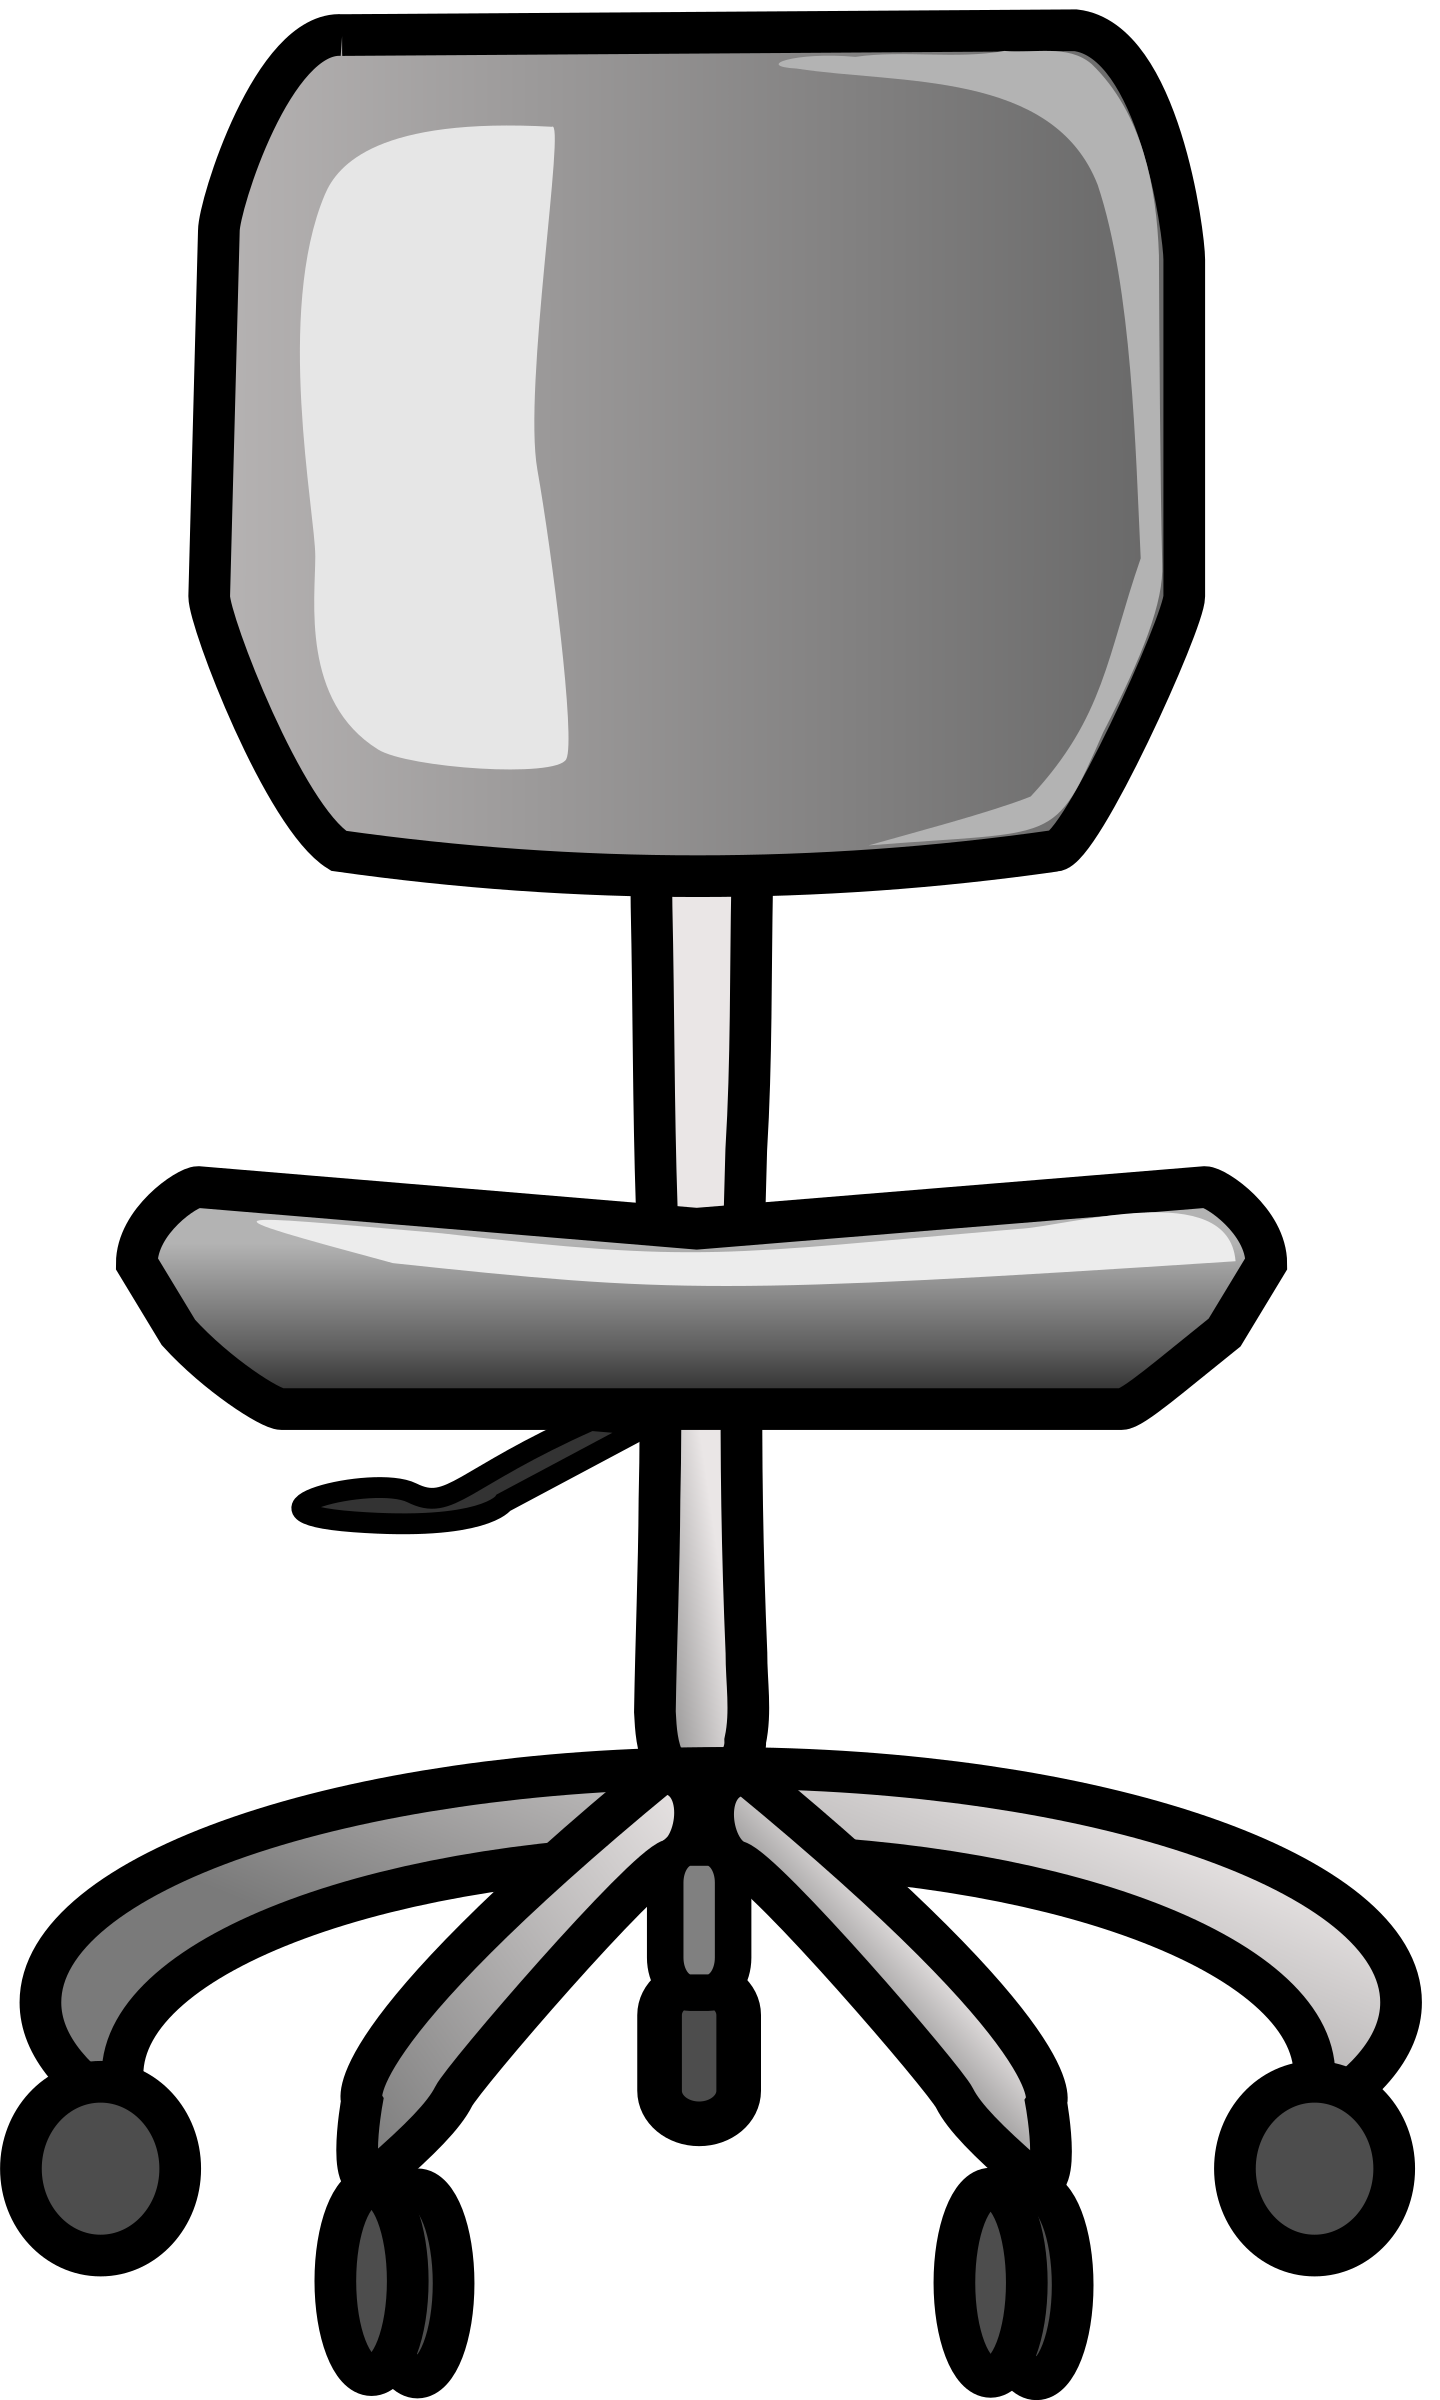 clipart transparent library . Chair clipart office chair.